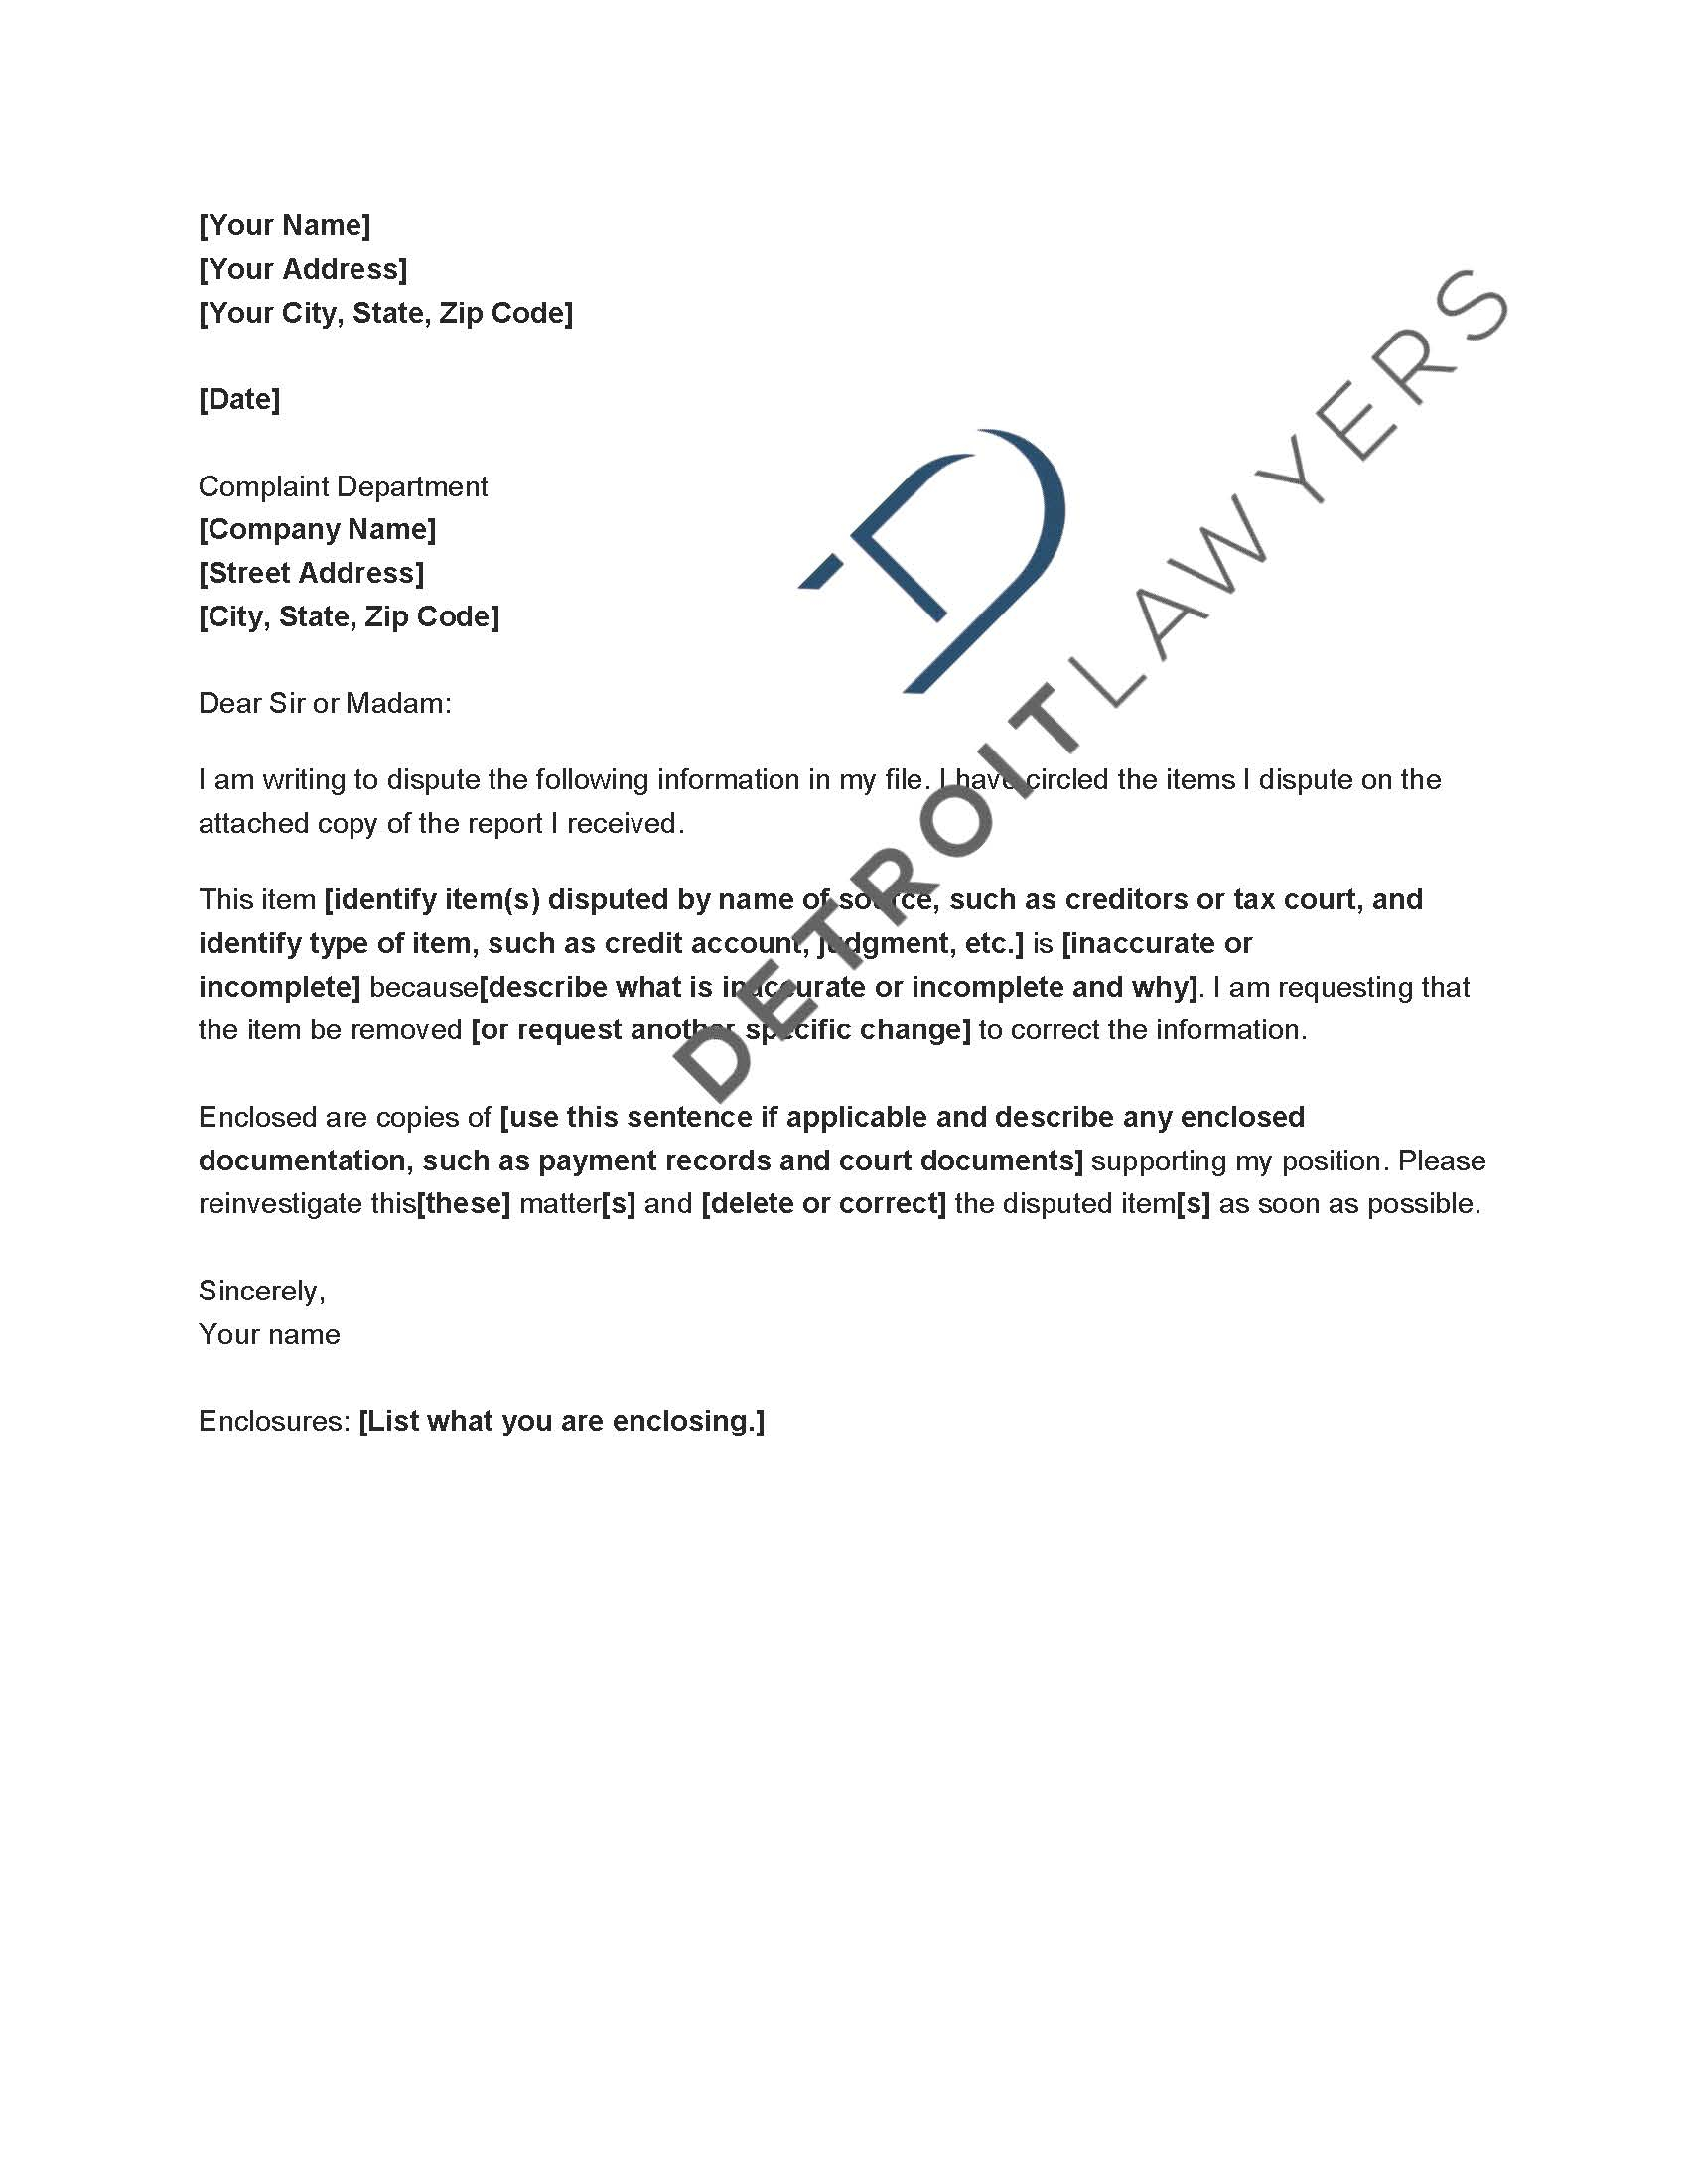 Insolvency Letter to Creditors Template - How to Write A Dispute Letter to Collection Agency Letter